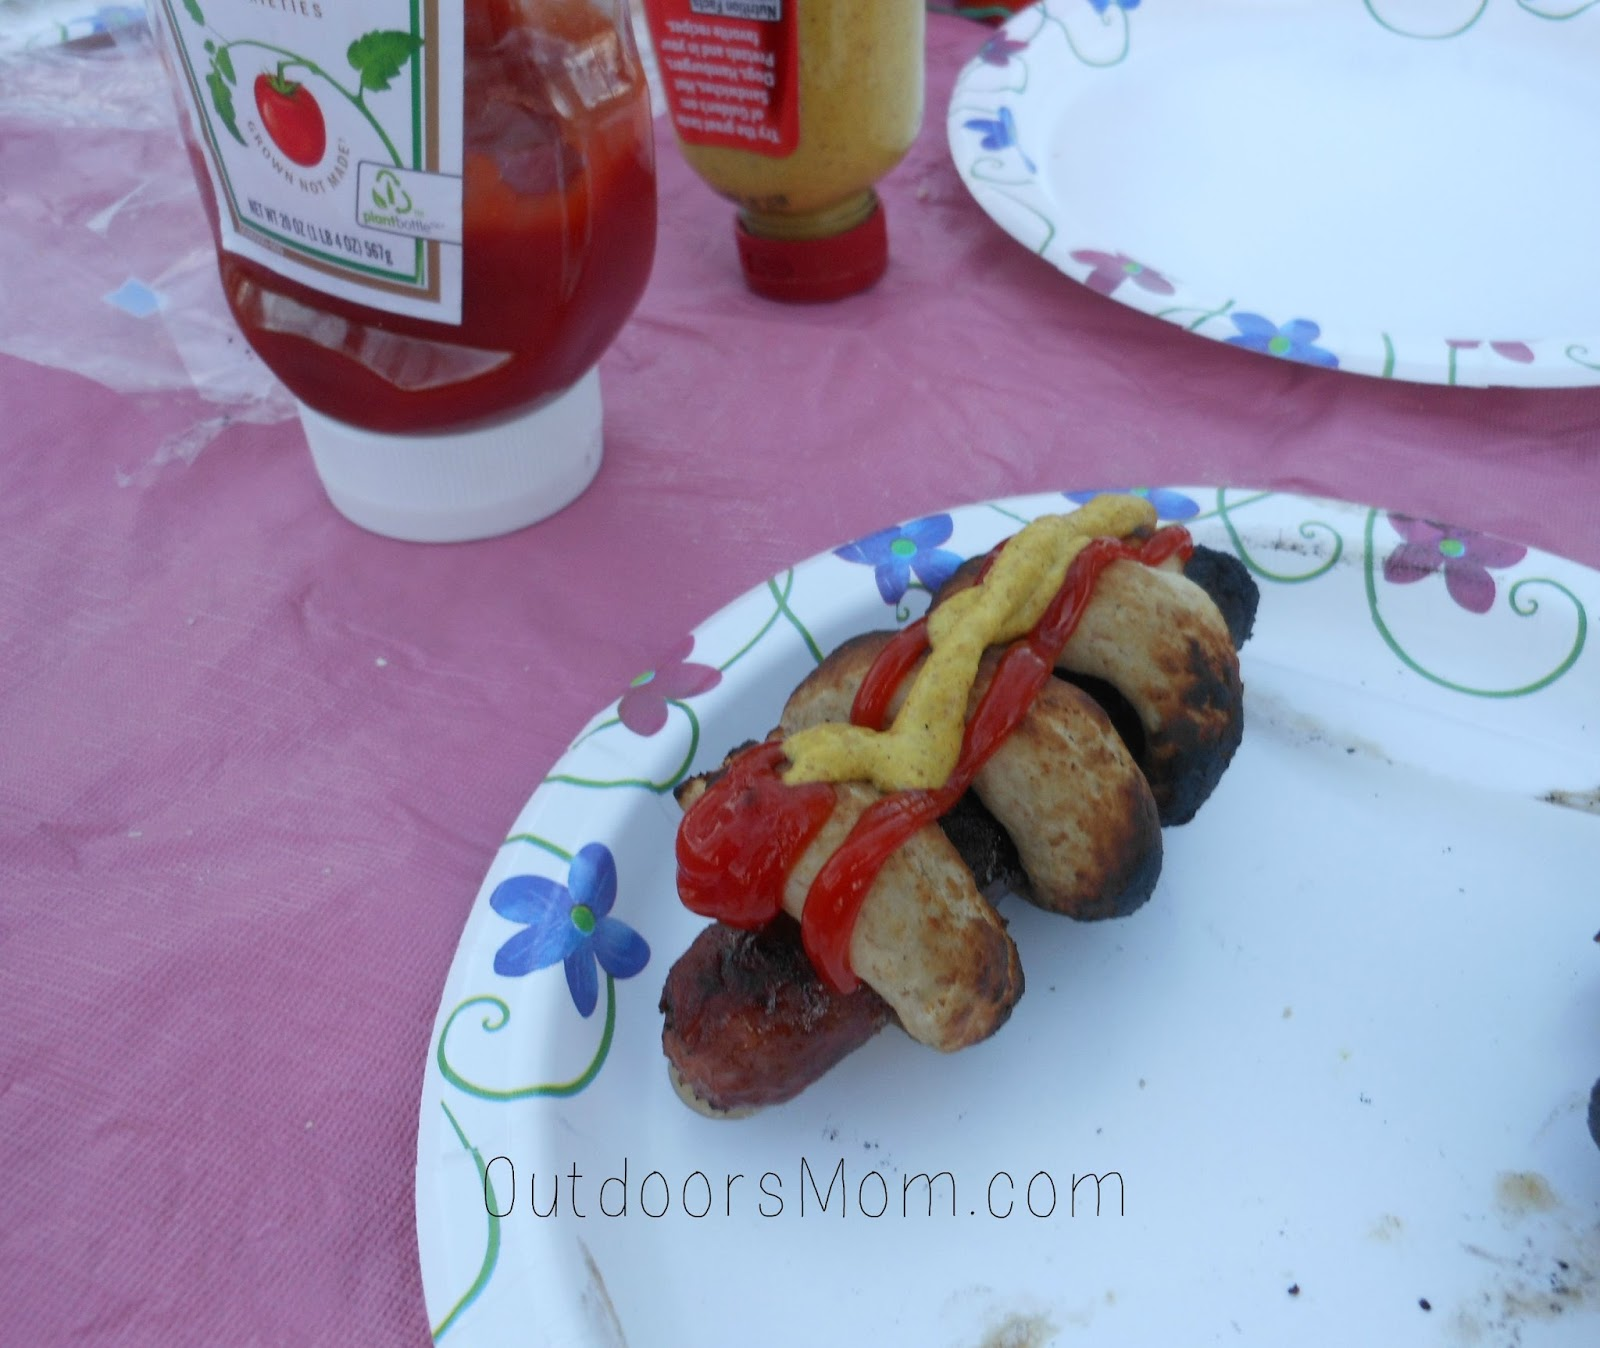 23 Mouthwatering Campfire Recipes You Need To Try: OutdoorsMom: 6 Mouth-Watering Campfire Dogs